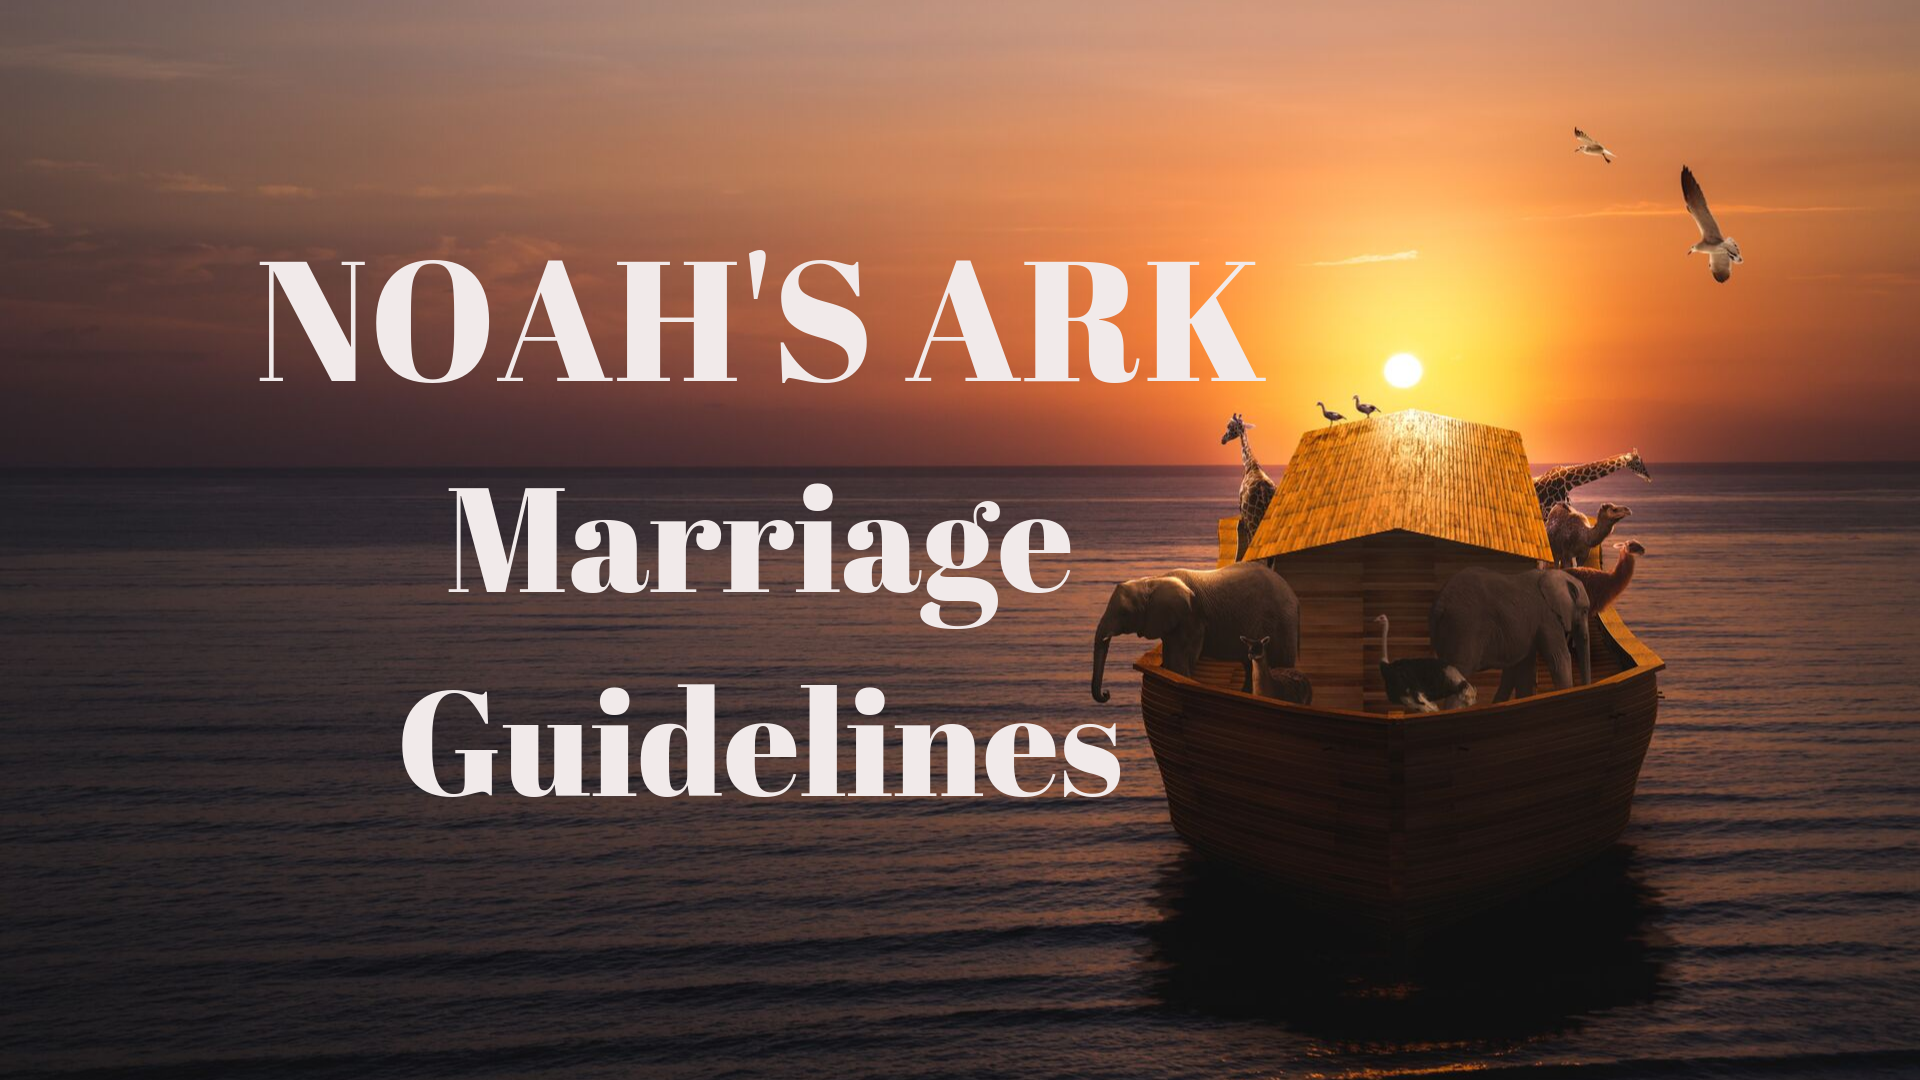 Noah's Ark Guidelines - Adobe Stock - Canva